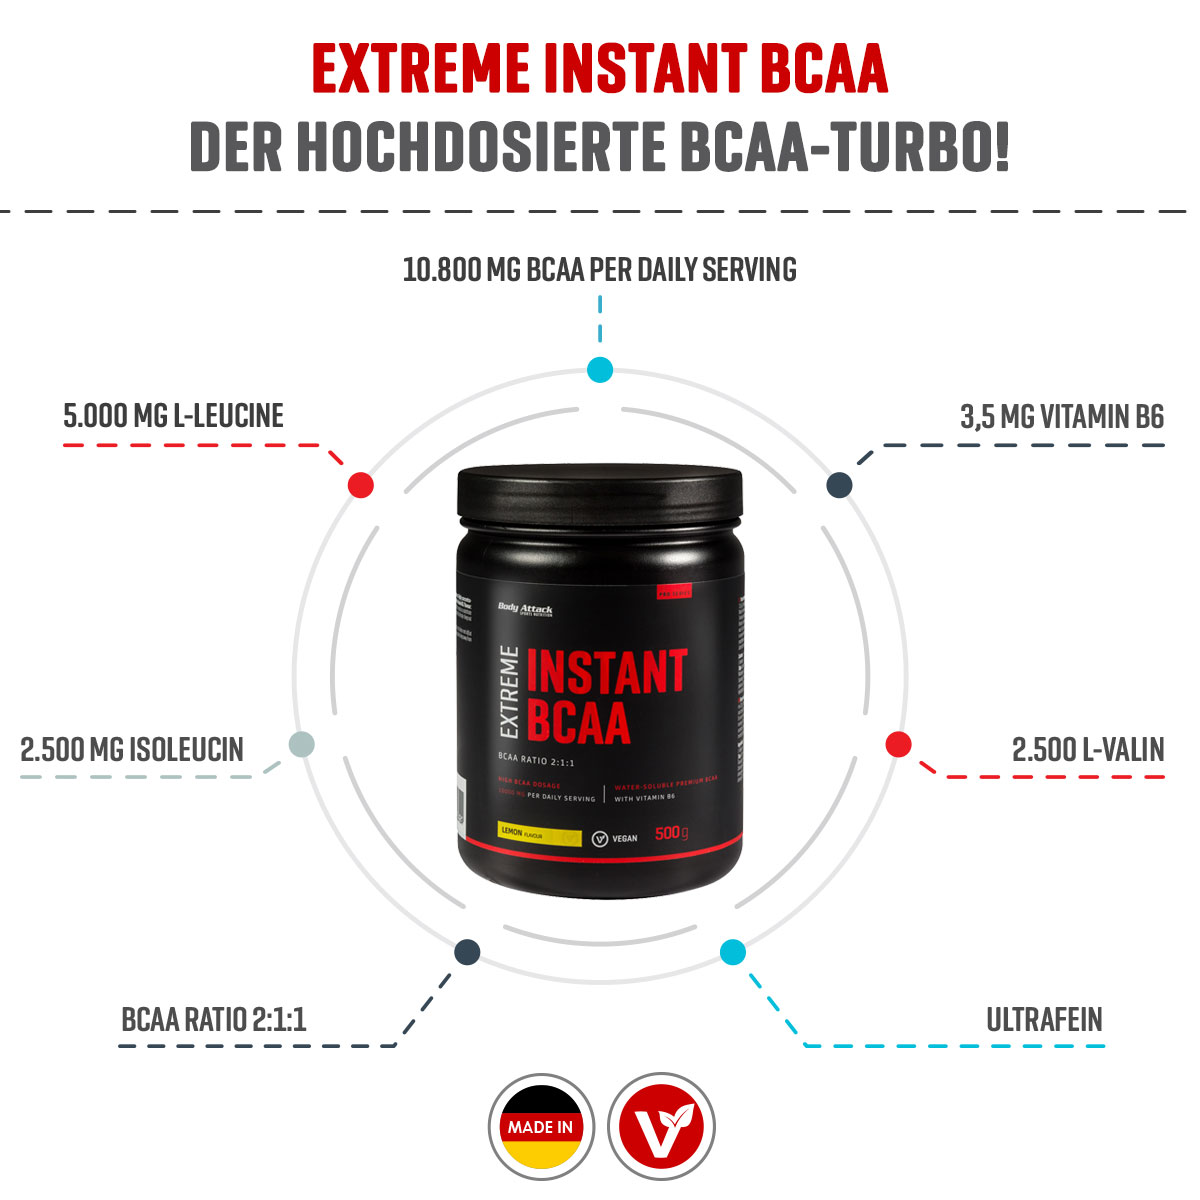 Instant BCAA Info